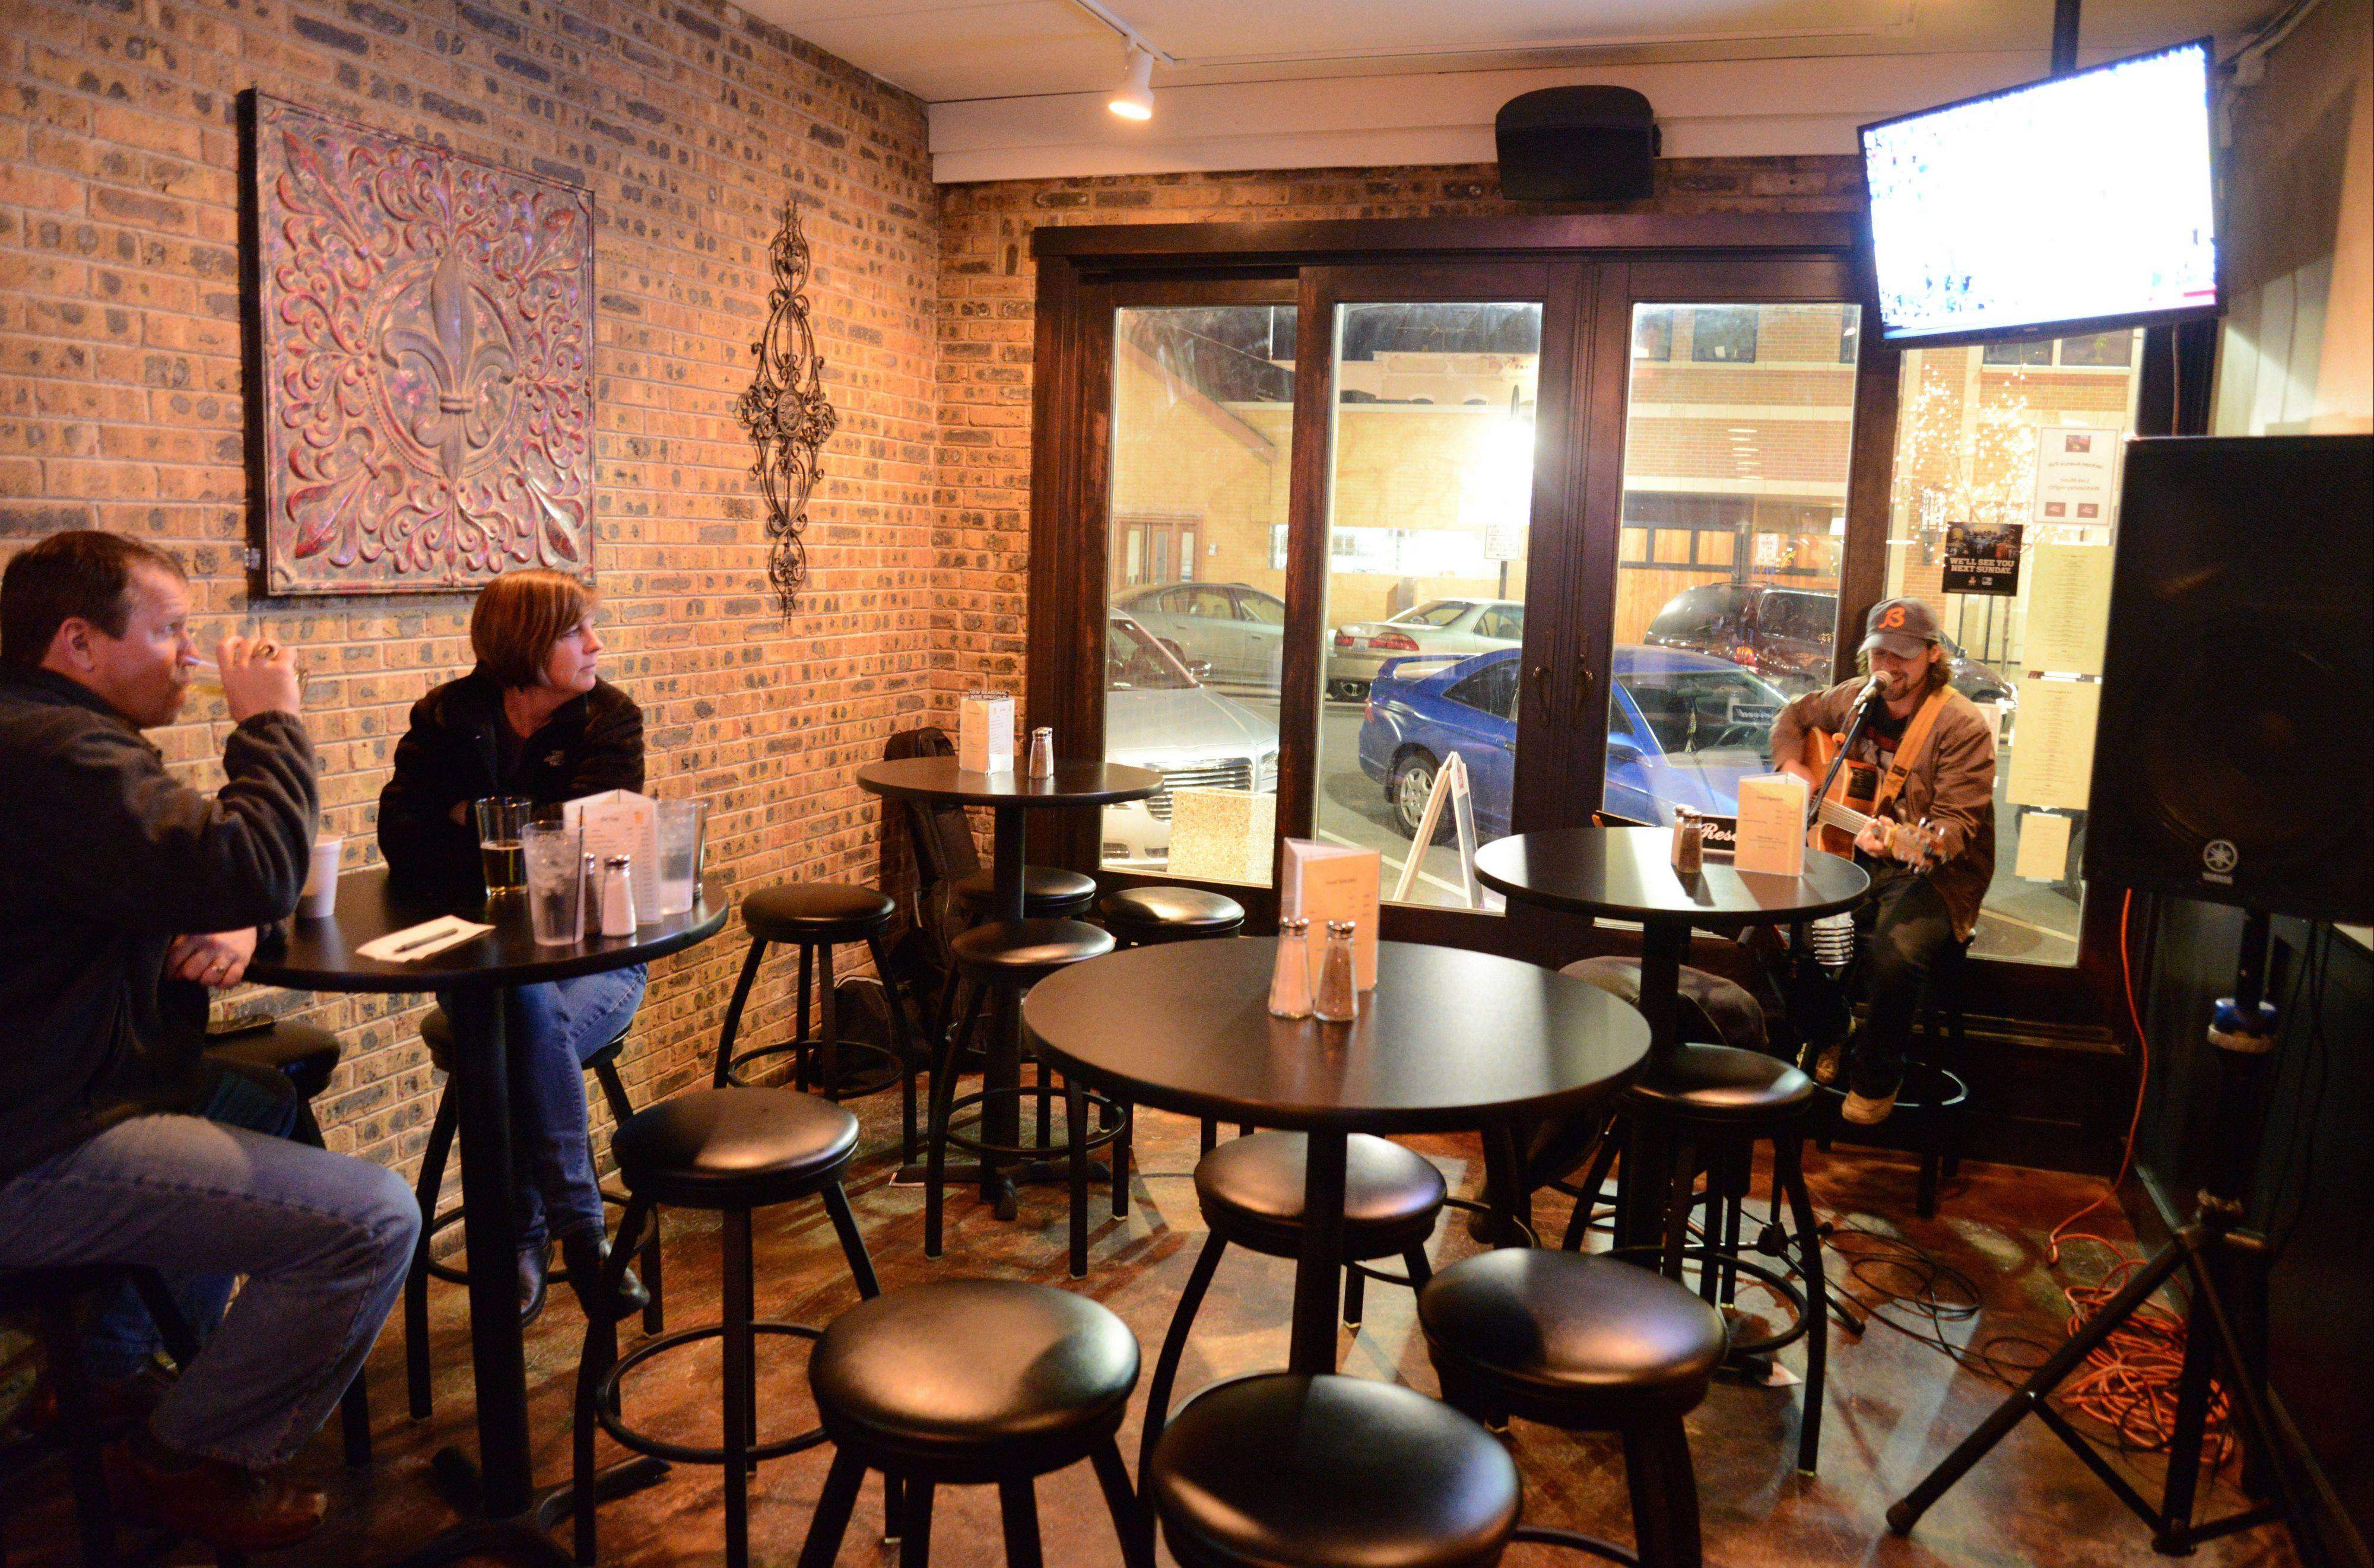 Jackson Ave. Pub in Naperville offers live music.